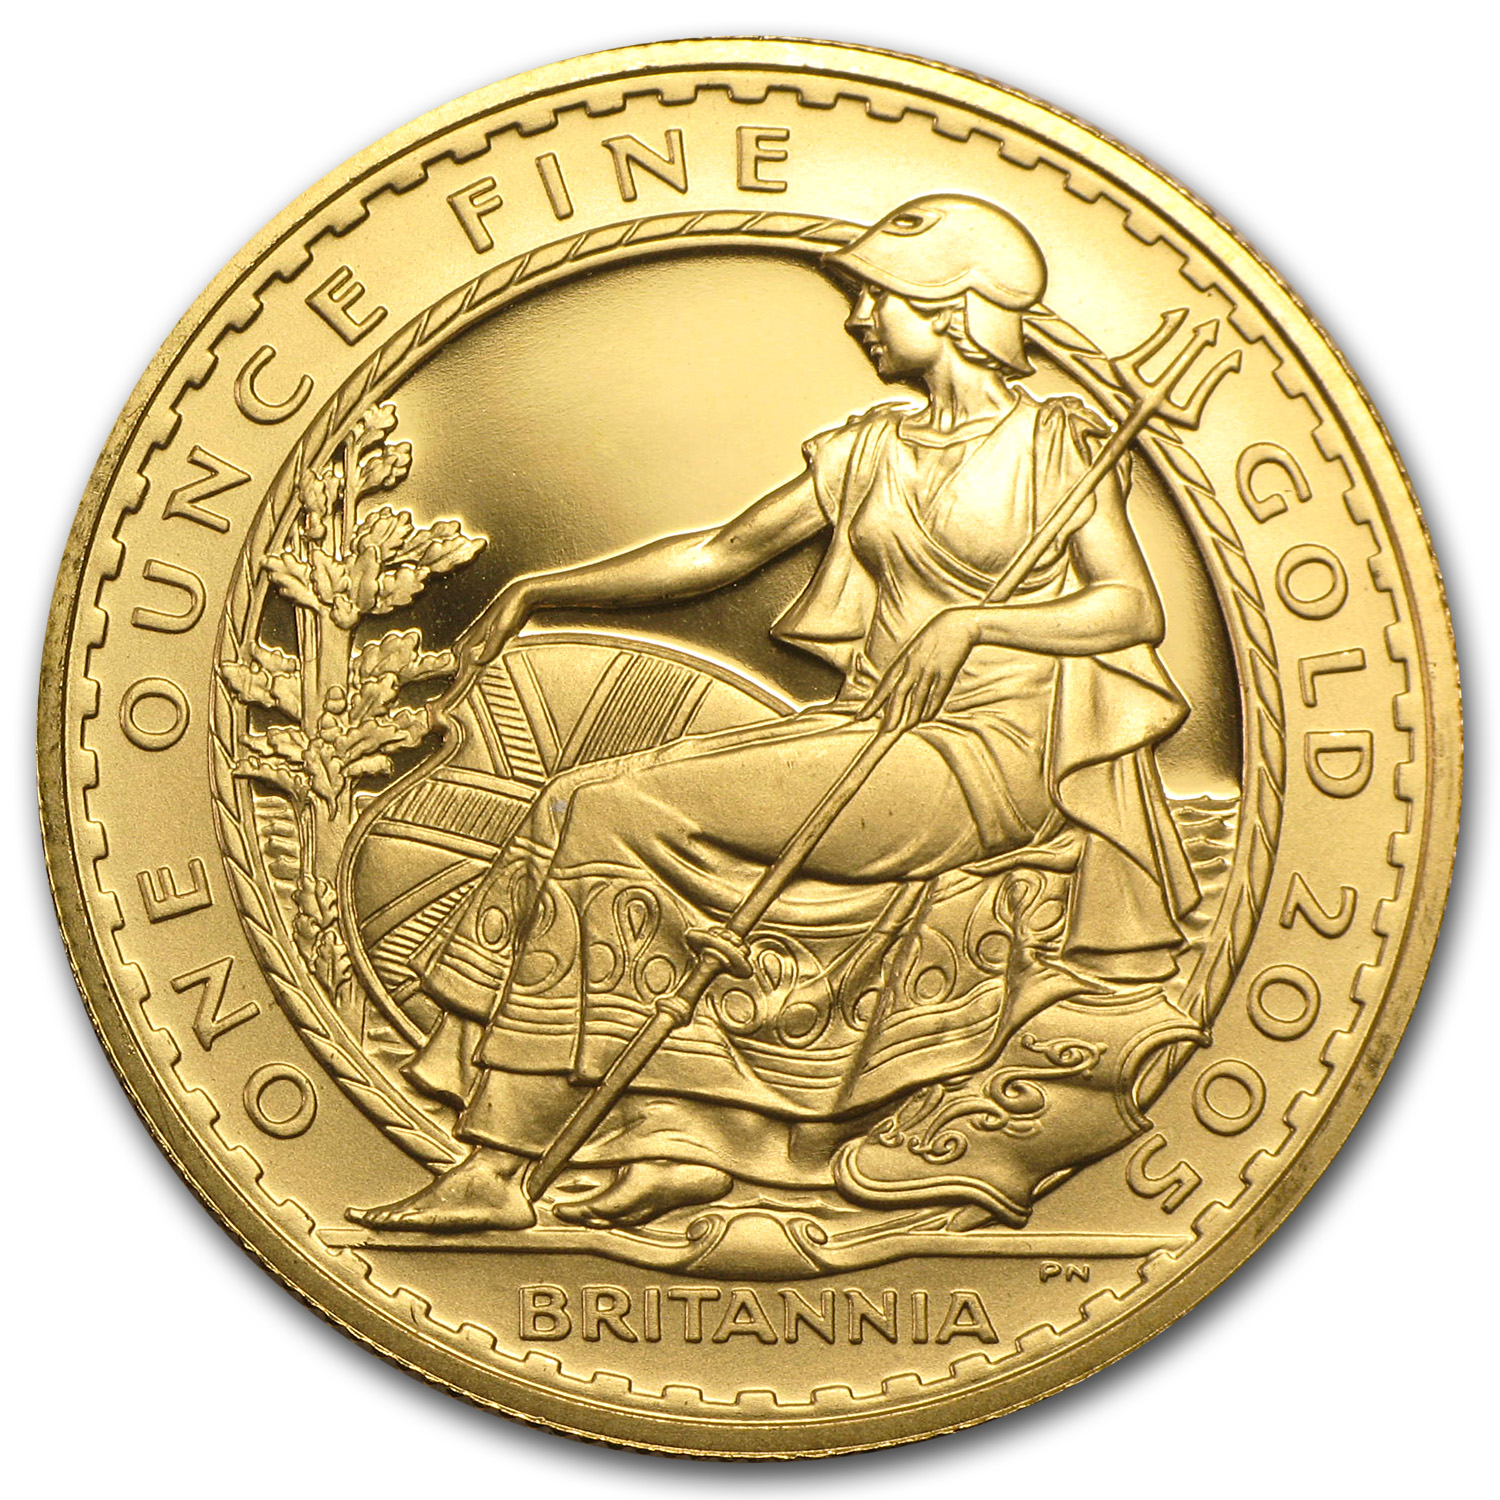 2005 Great Britain Proof Gold 1 oz Britannia